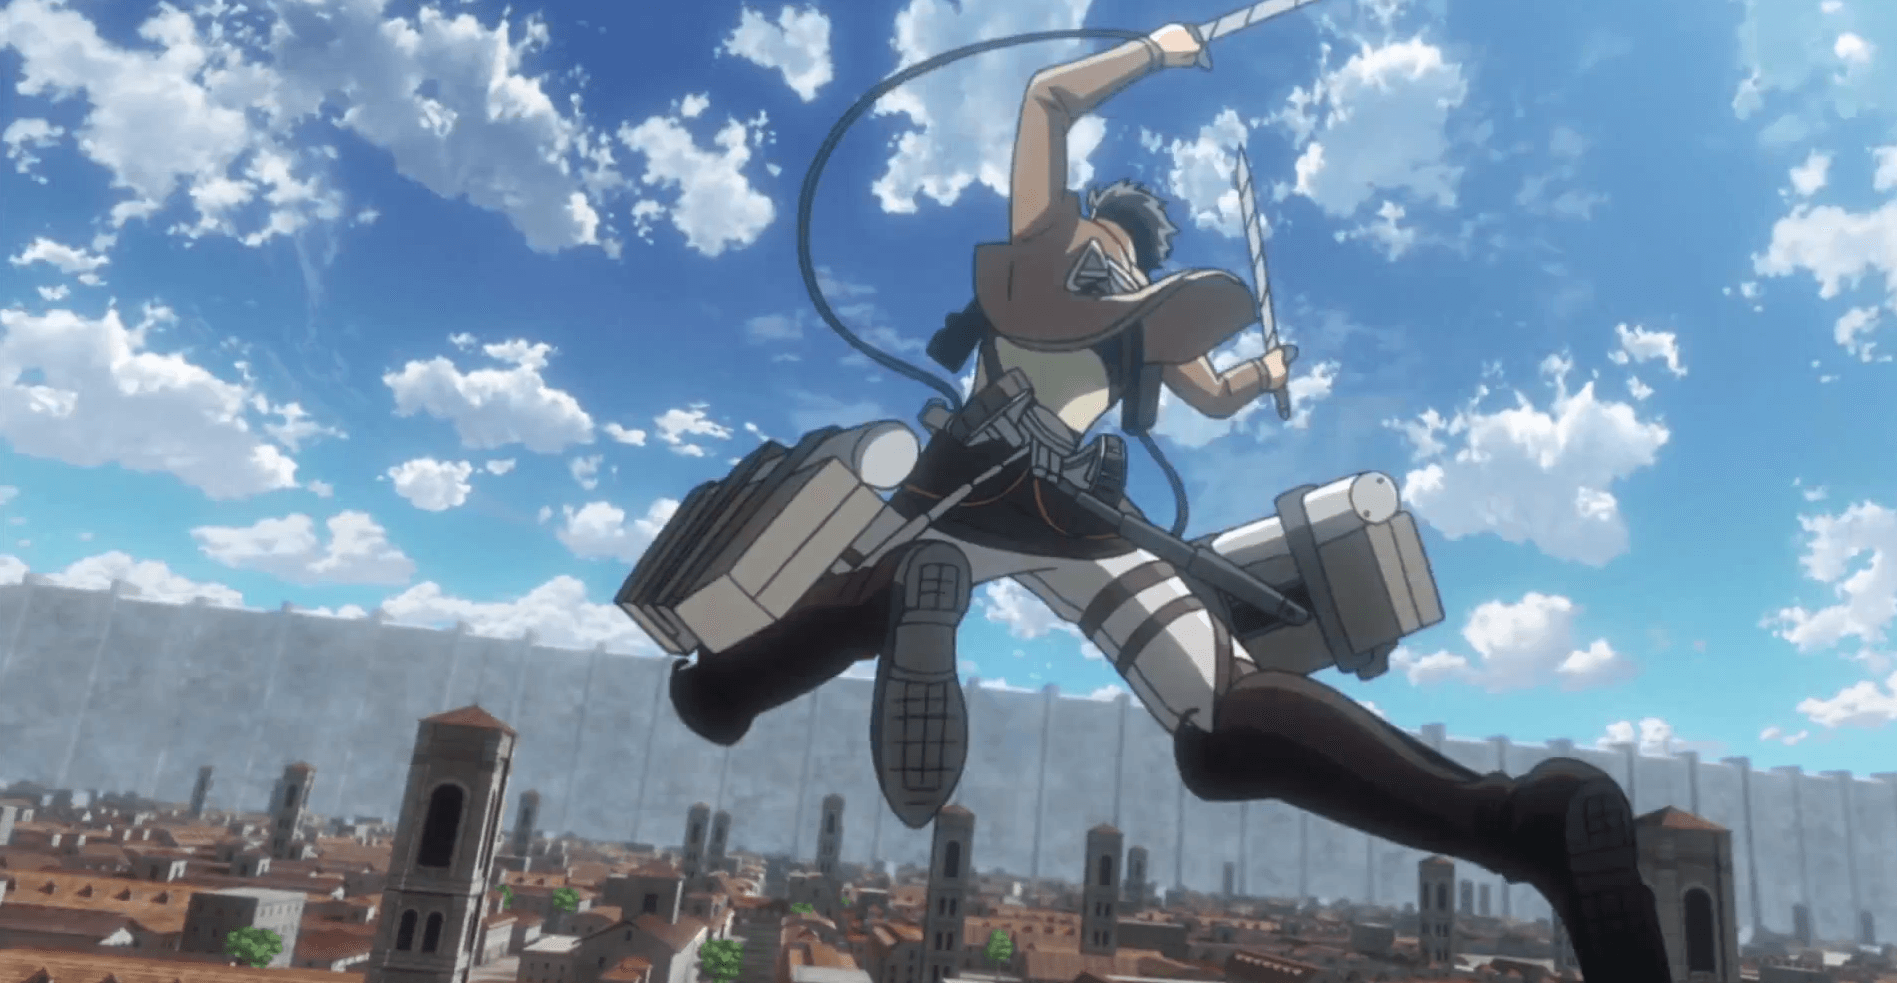 Attack On Titan Episode 1 First Impressions